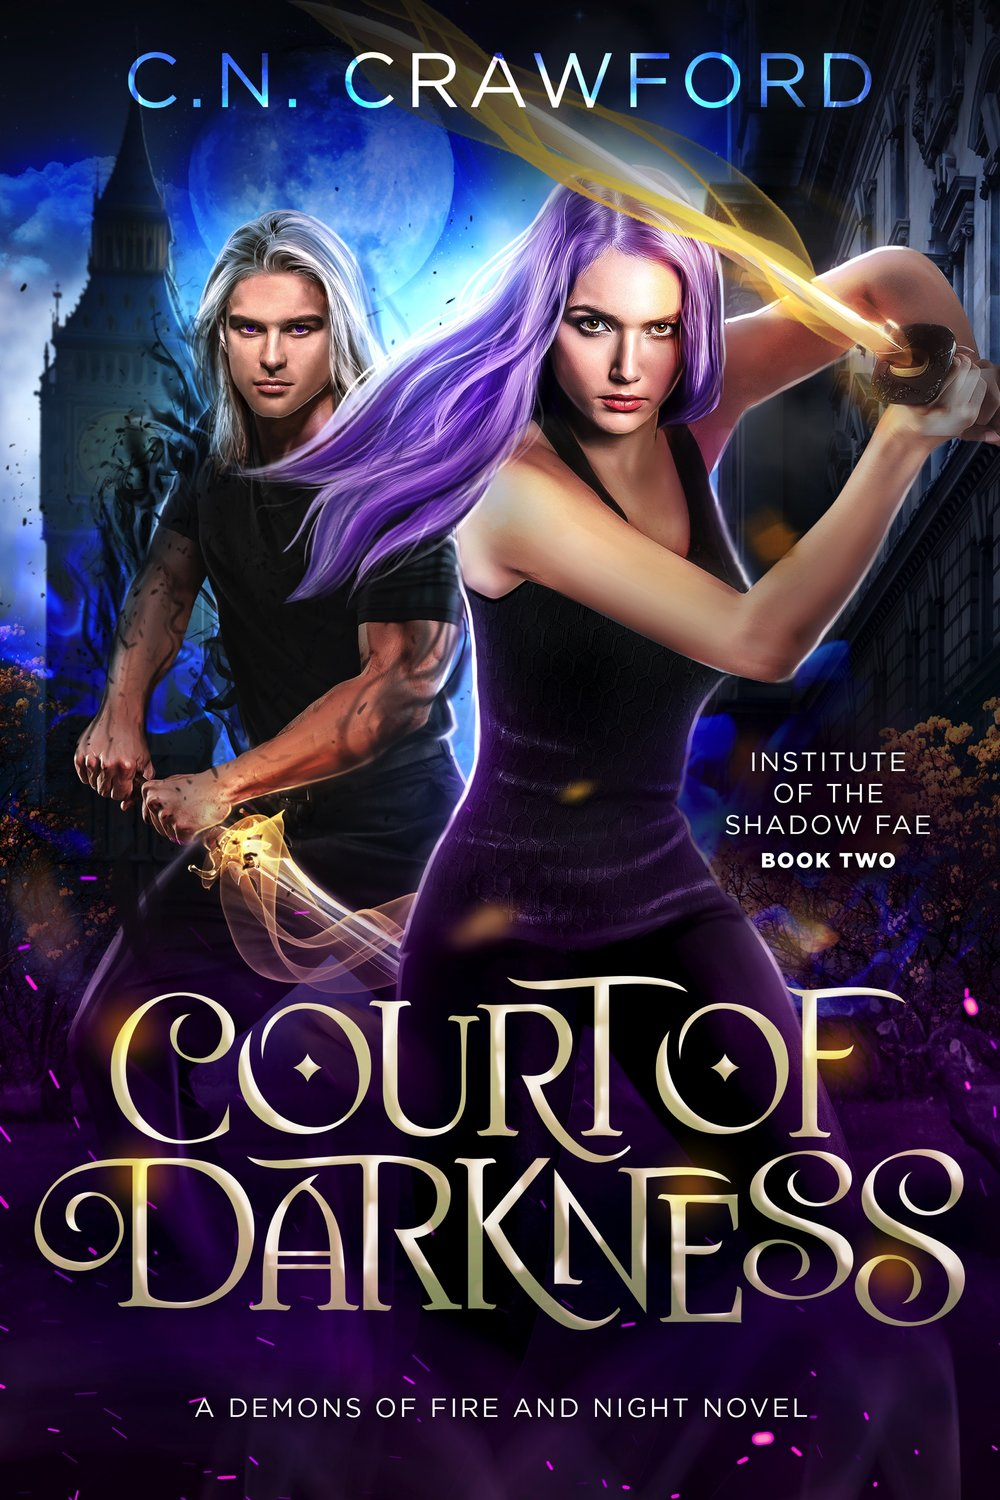 Court-of-Darkness-Cover.jpg